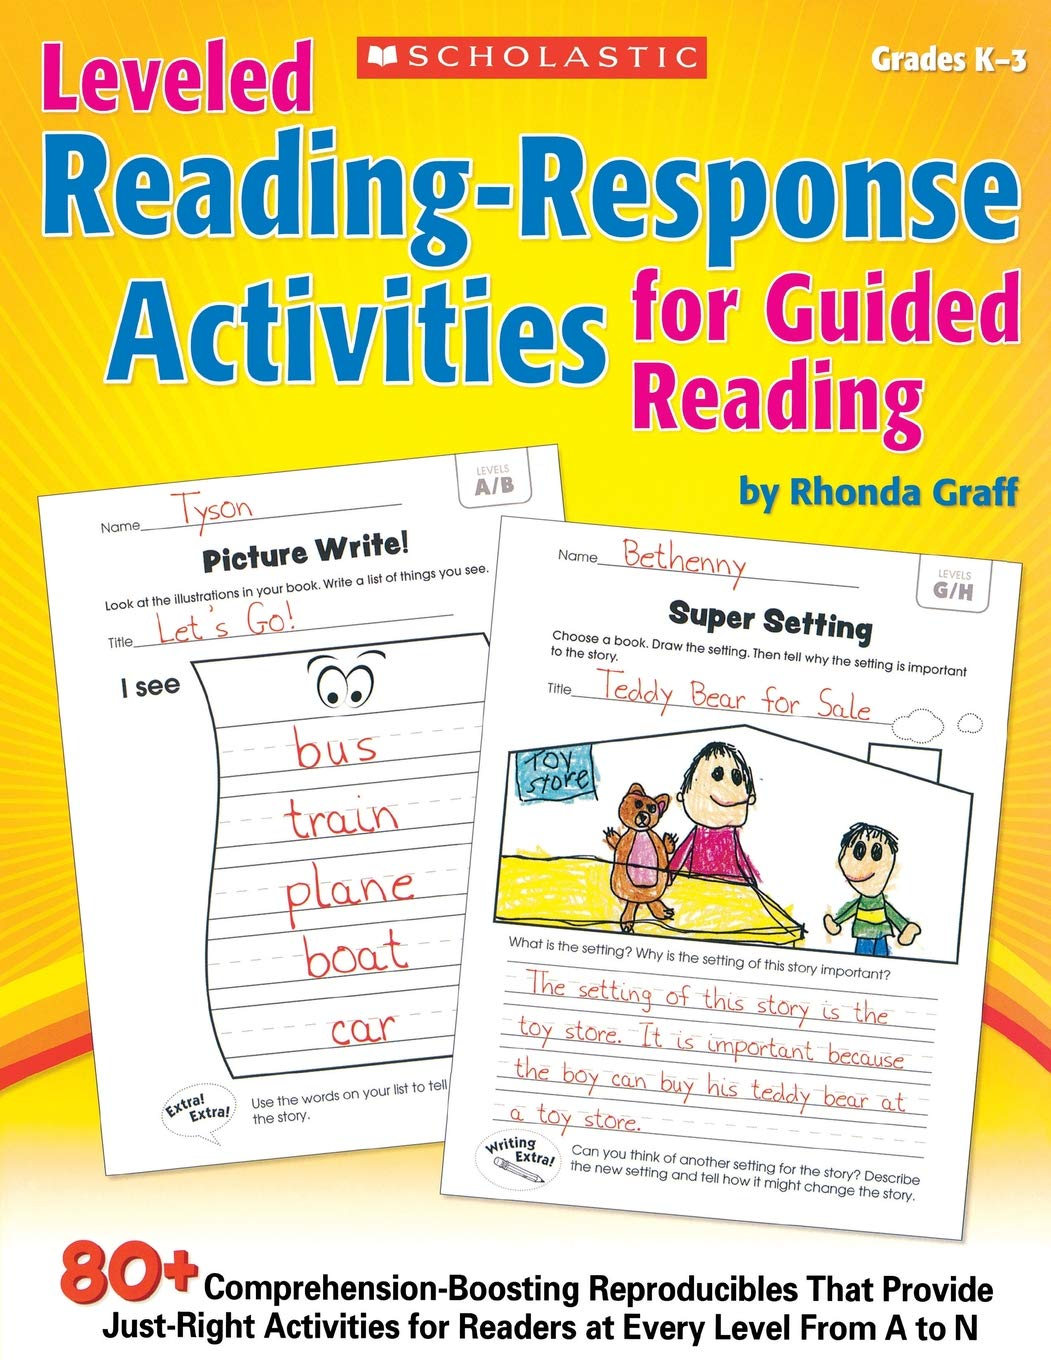 - Amazon.com: Leveled Reading-Response Activities For Guided Reading